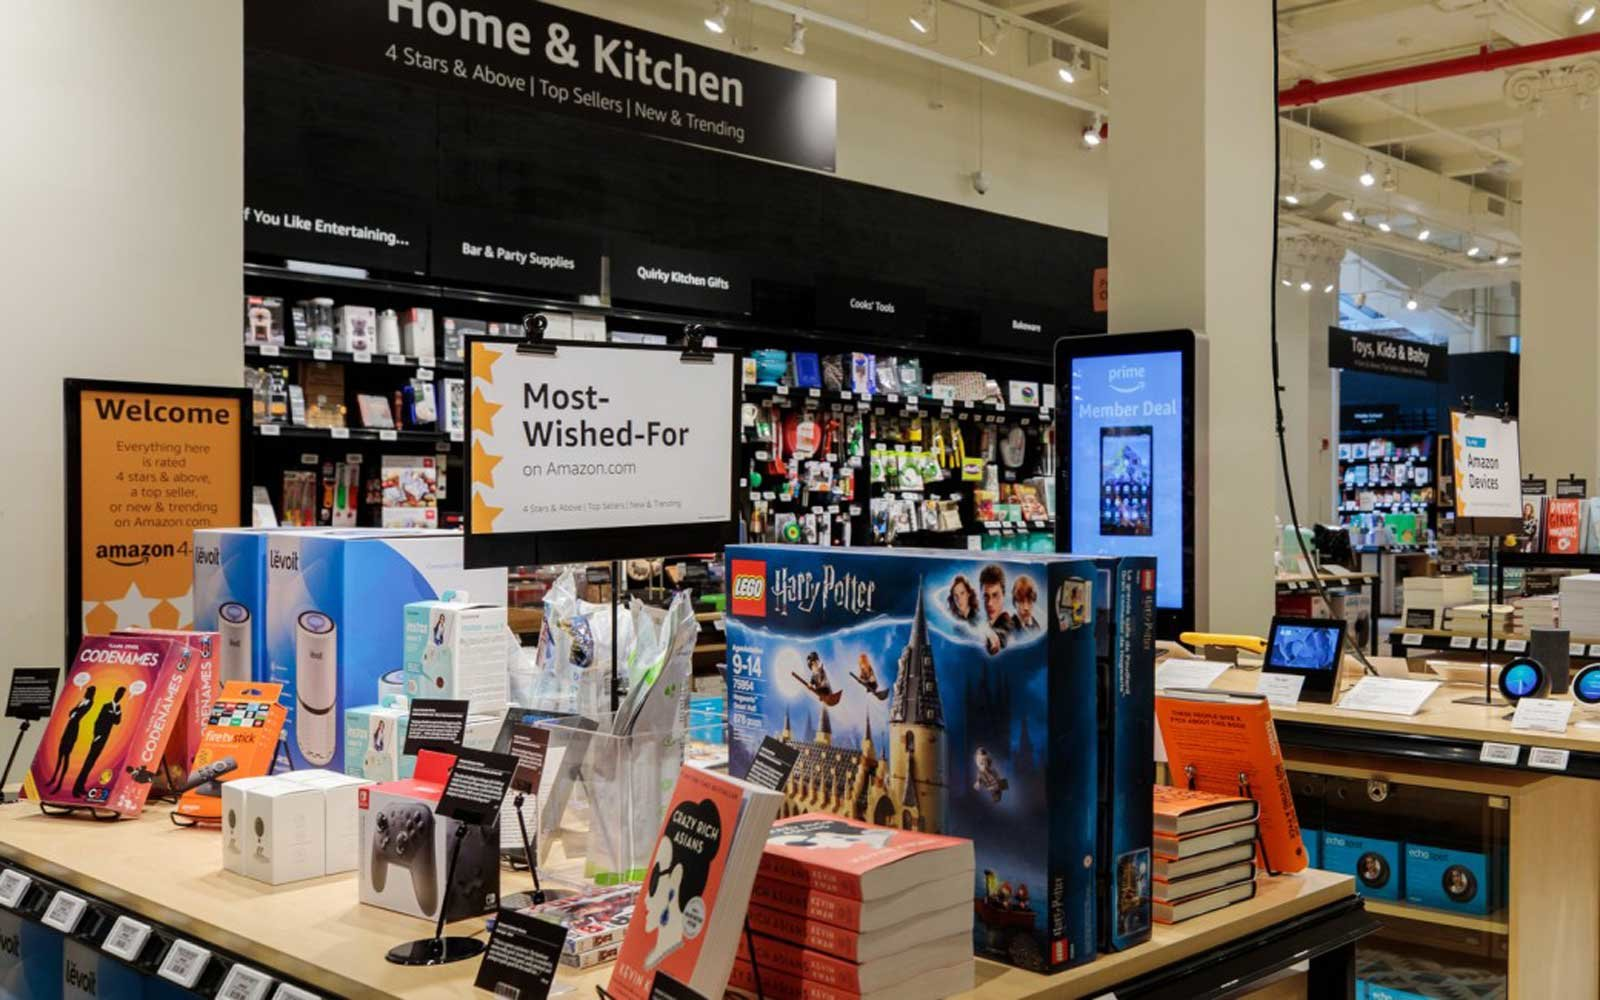 Amazon opens 4-star store